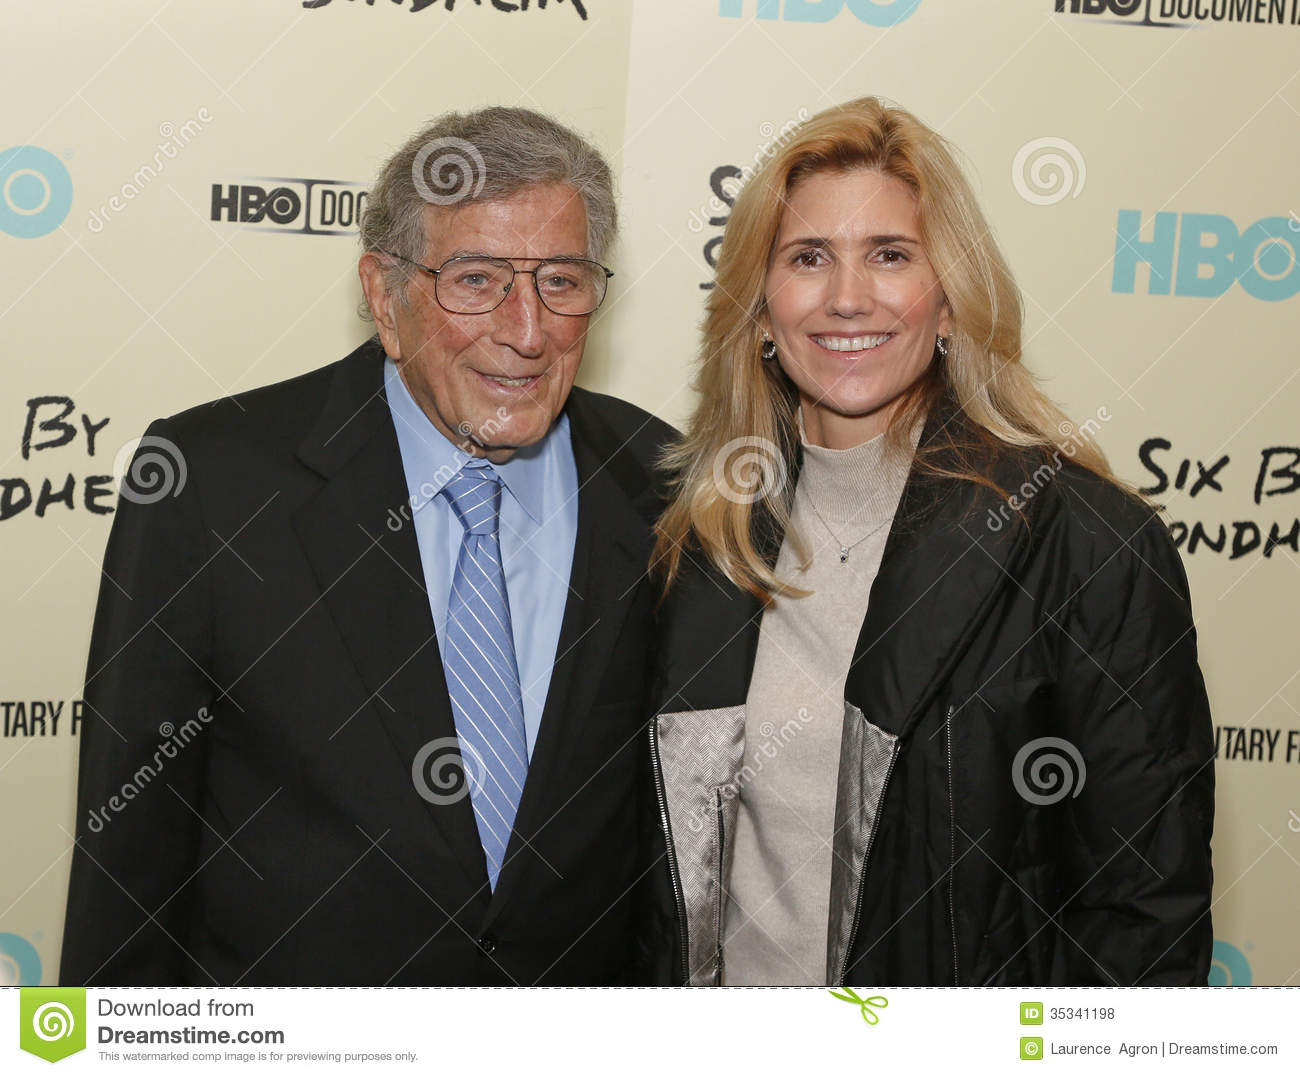 Tony Bennett And Susan Crow Editorial Stock Photo - Image of